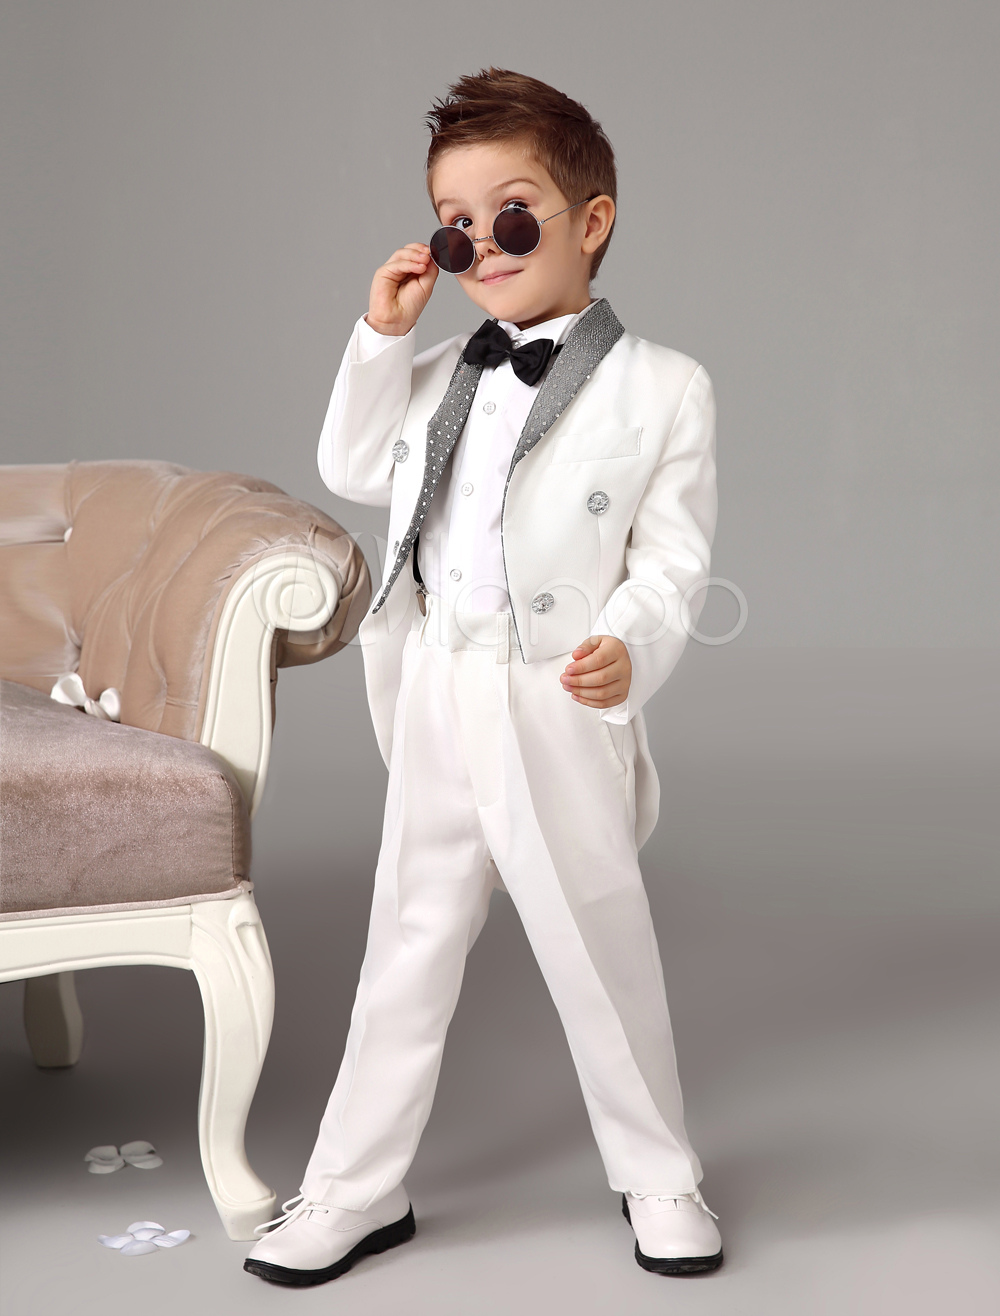 baby boy suit white kids wedding tuxedo set jacket pants shirts bow tie 4 pcs ring bearer suits. Black Bedroom Furniture Sets. Home Design Ideas